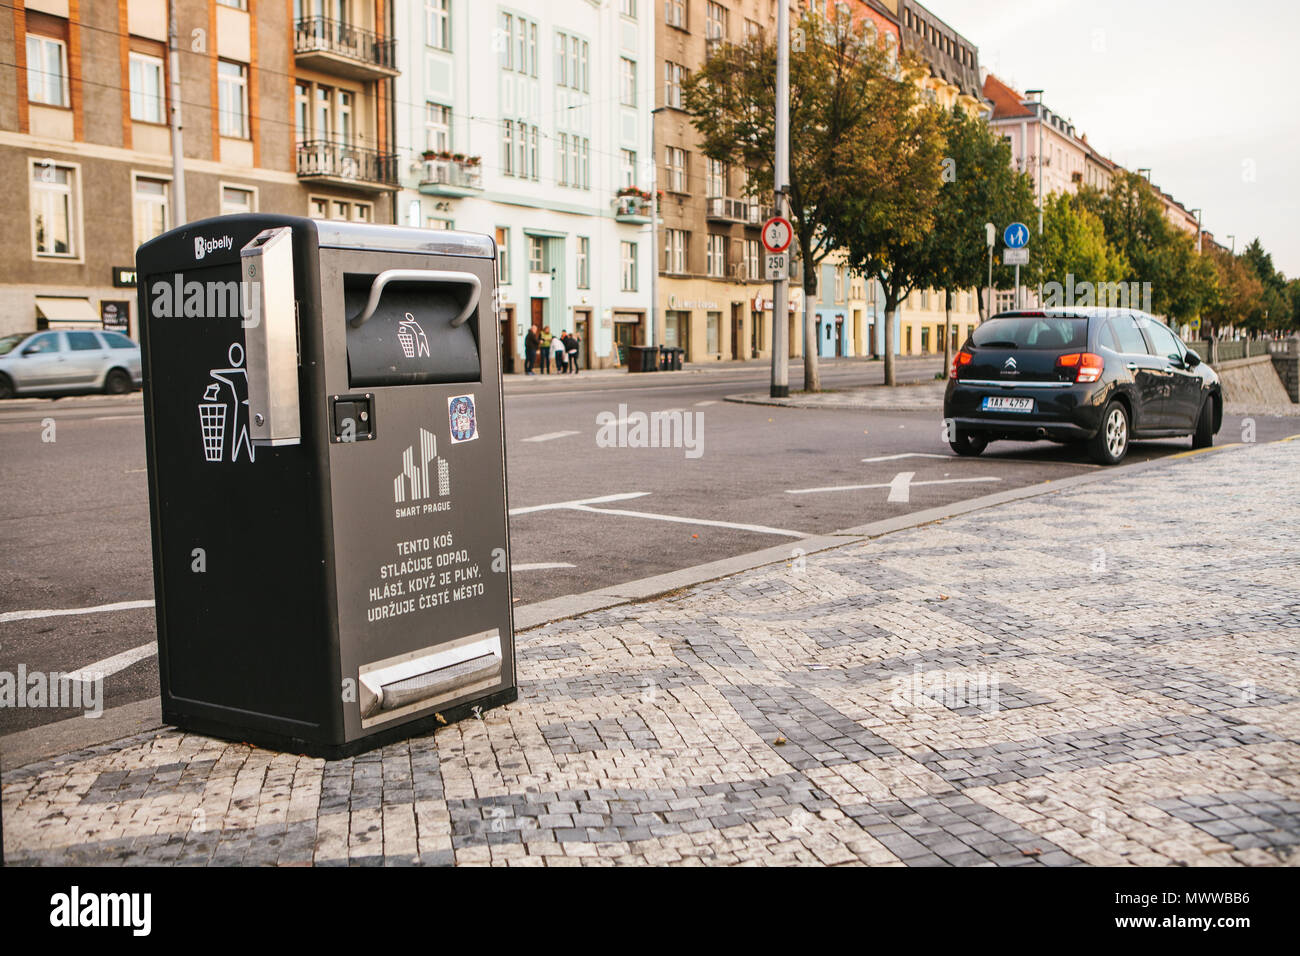 Prague, September 23, 2017: A modern smart trash can on the street of the city. Collection of waste in Europe for subsequent disposal. Eco-friendly waste collection. - Stock Image